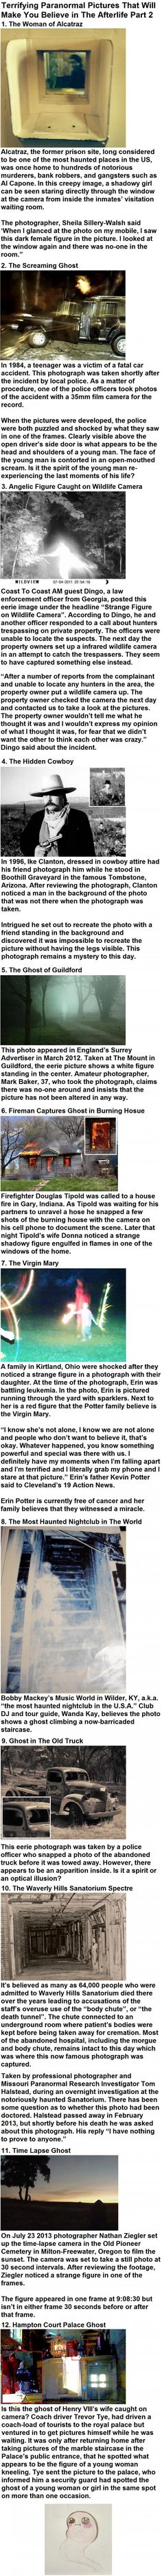 Miracle Village in Florida, where rapists, murderers and robbers live